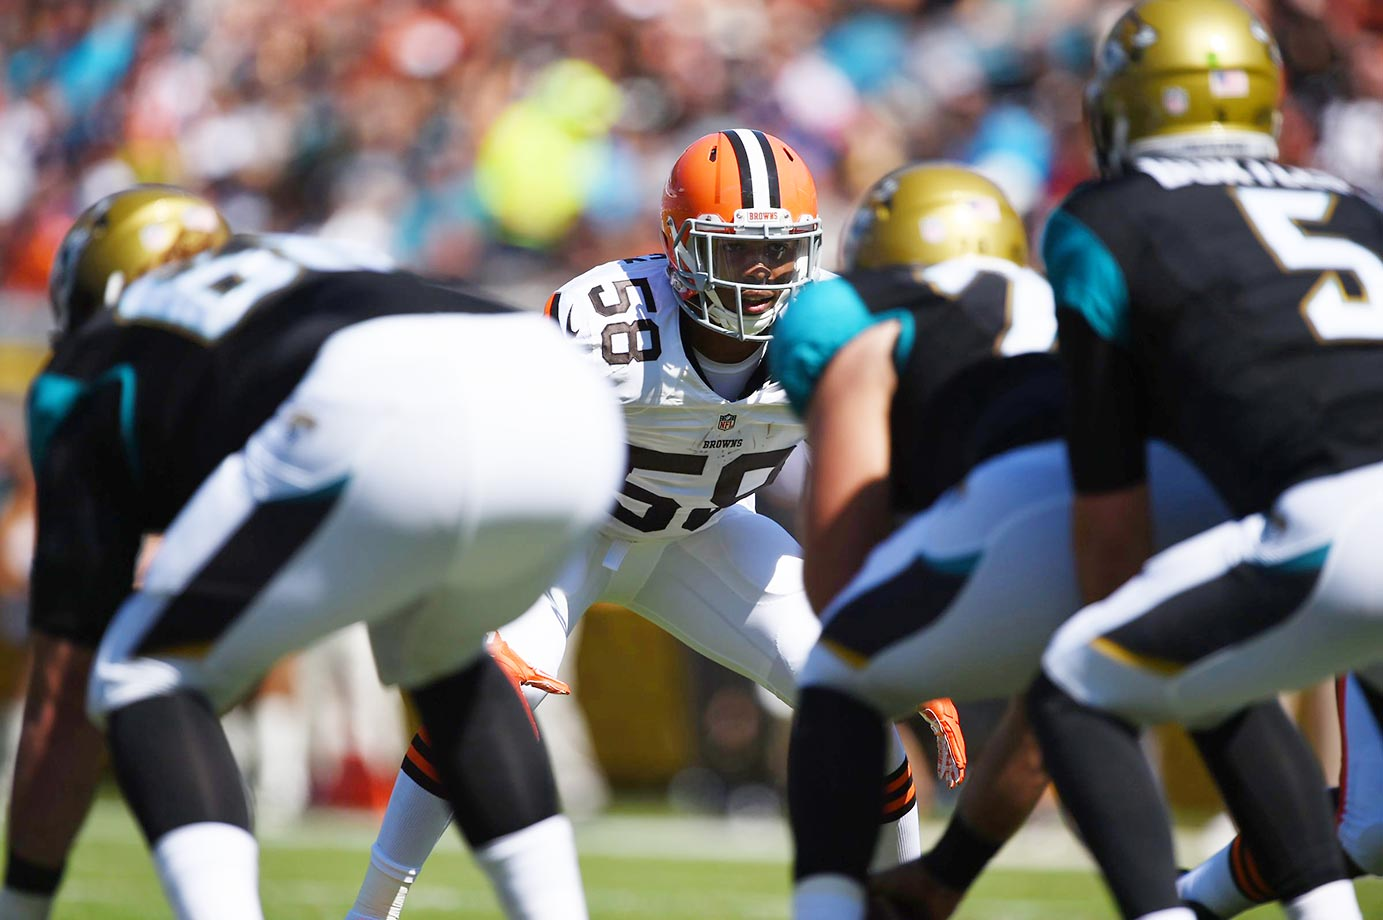 Few may be familiar with Kirksey's game, but the rookie from Iowa flashed on the tape as the kind of range player who could be extremely valuable over time as a nickel inside linebacker. Don't sleep on his development in Cleveland's improving defense.